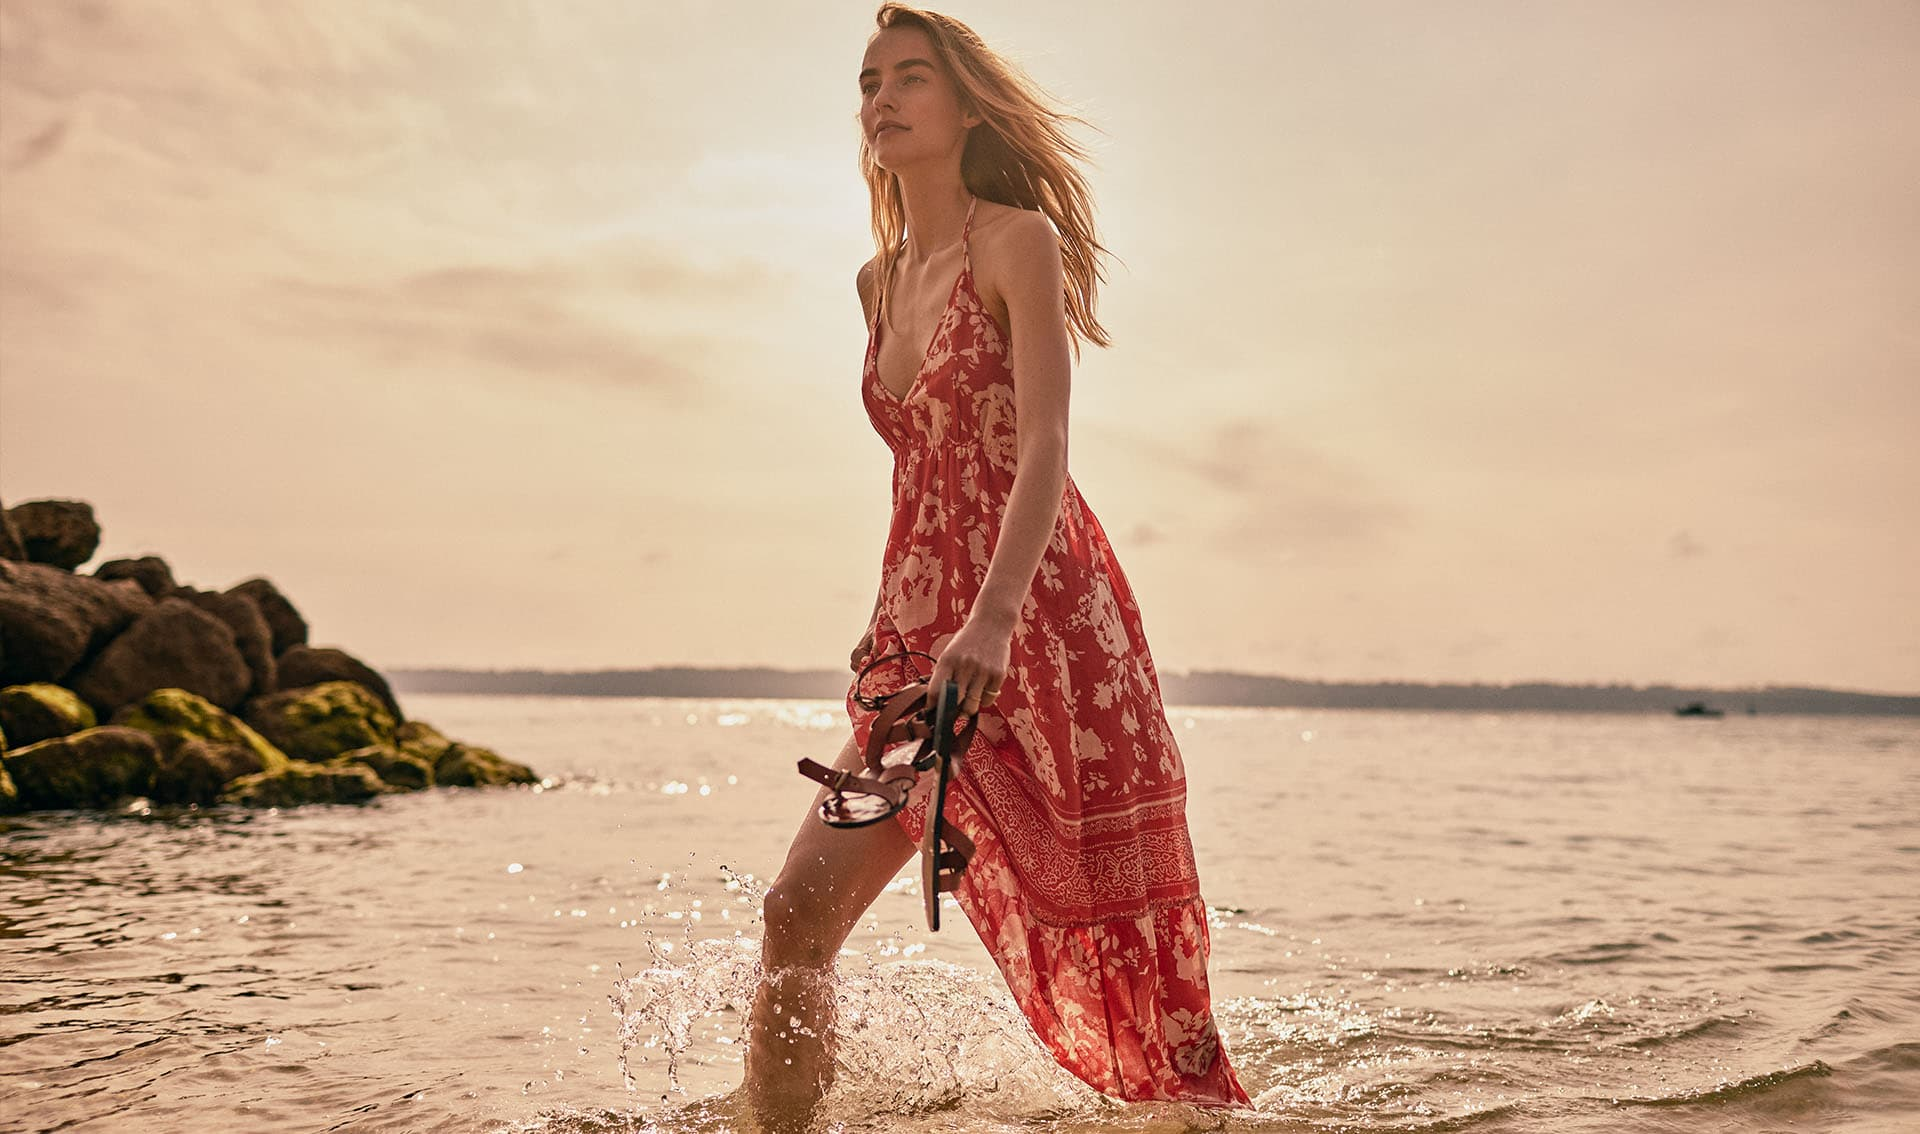 Girl walking on the shores of the sea wearing a long red printed dress and holding a pair of brown leather sandals in her hand.